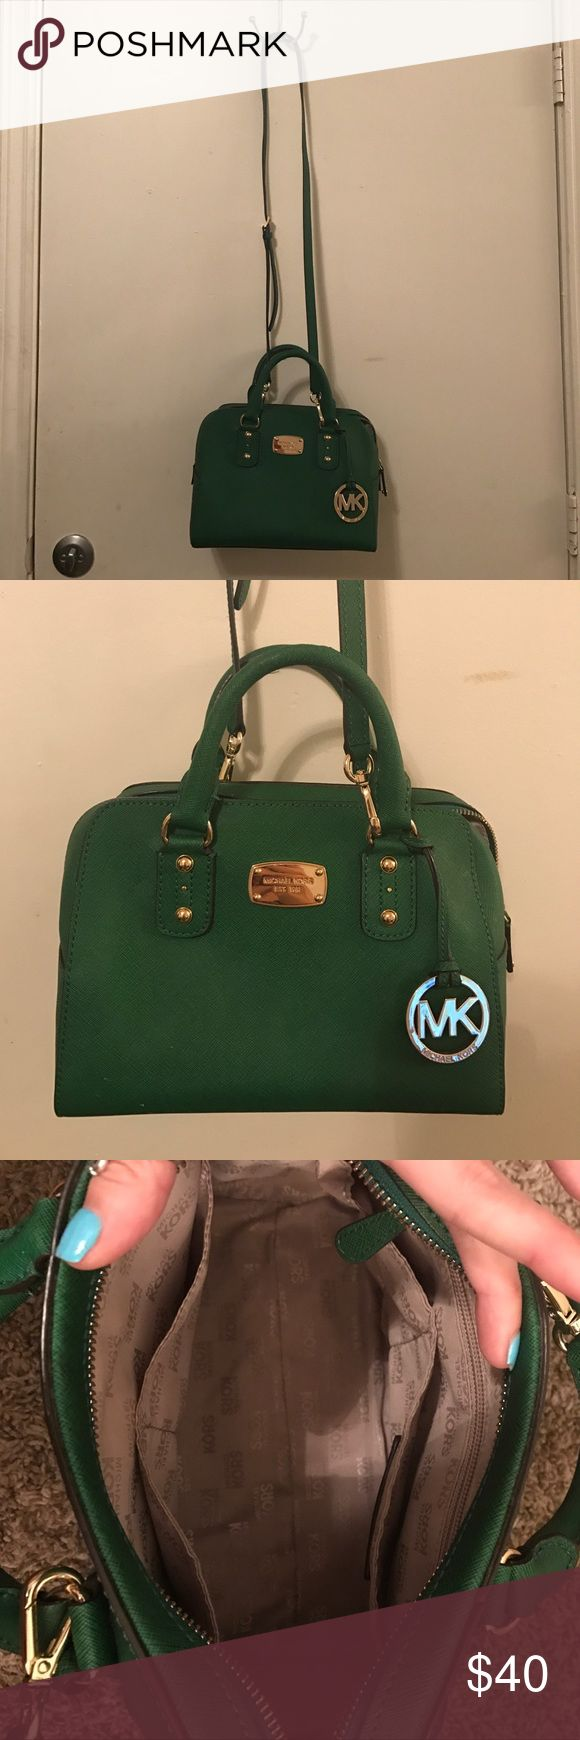 Michael Kors handbad Dark green color with gold hardware. Comes with a long cross body strap. I don't use it anymore so I thought I would sell it. It's a nice size bag. It fits a lot of stuff. It has 4 pockets plus a zipper pocket on the inside of the bag. Michael Kors Bags Crossbody Bags